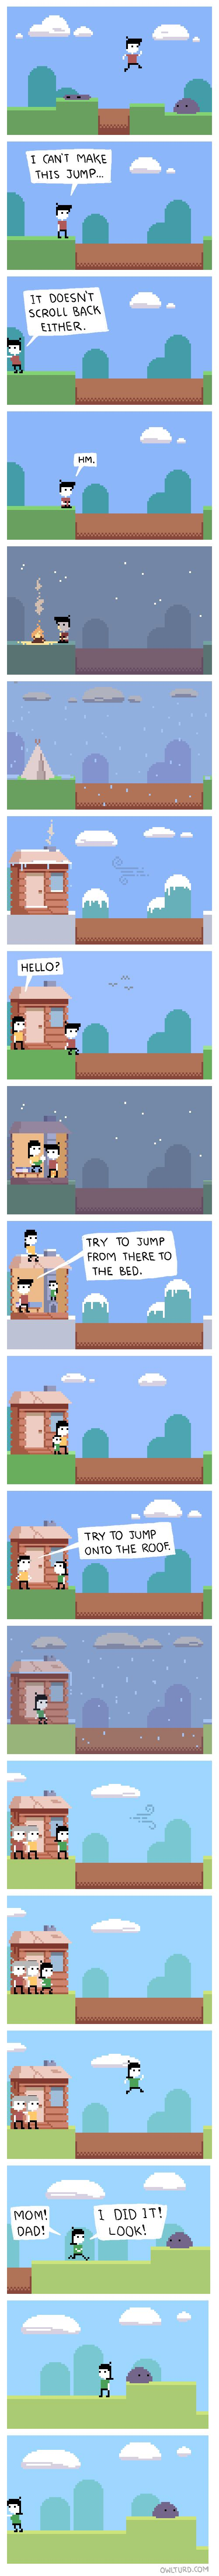 [Image] Strangely Motivating… Scroll Back [X-Post R/Gaming]